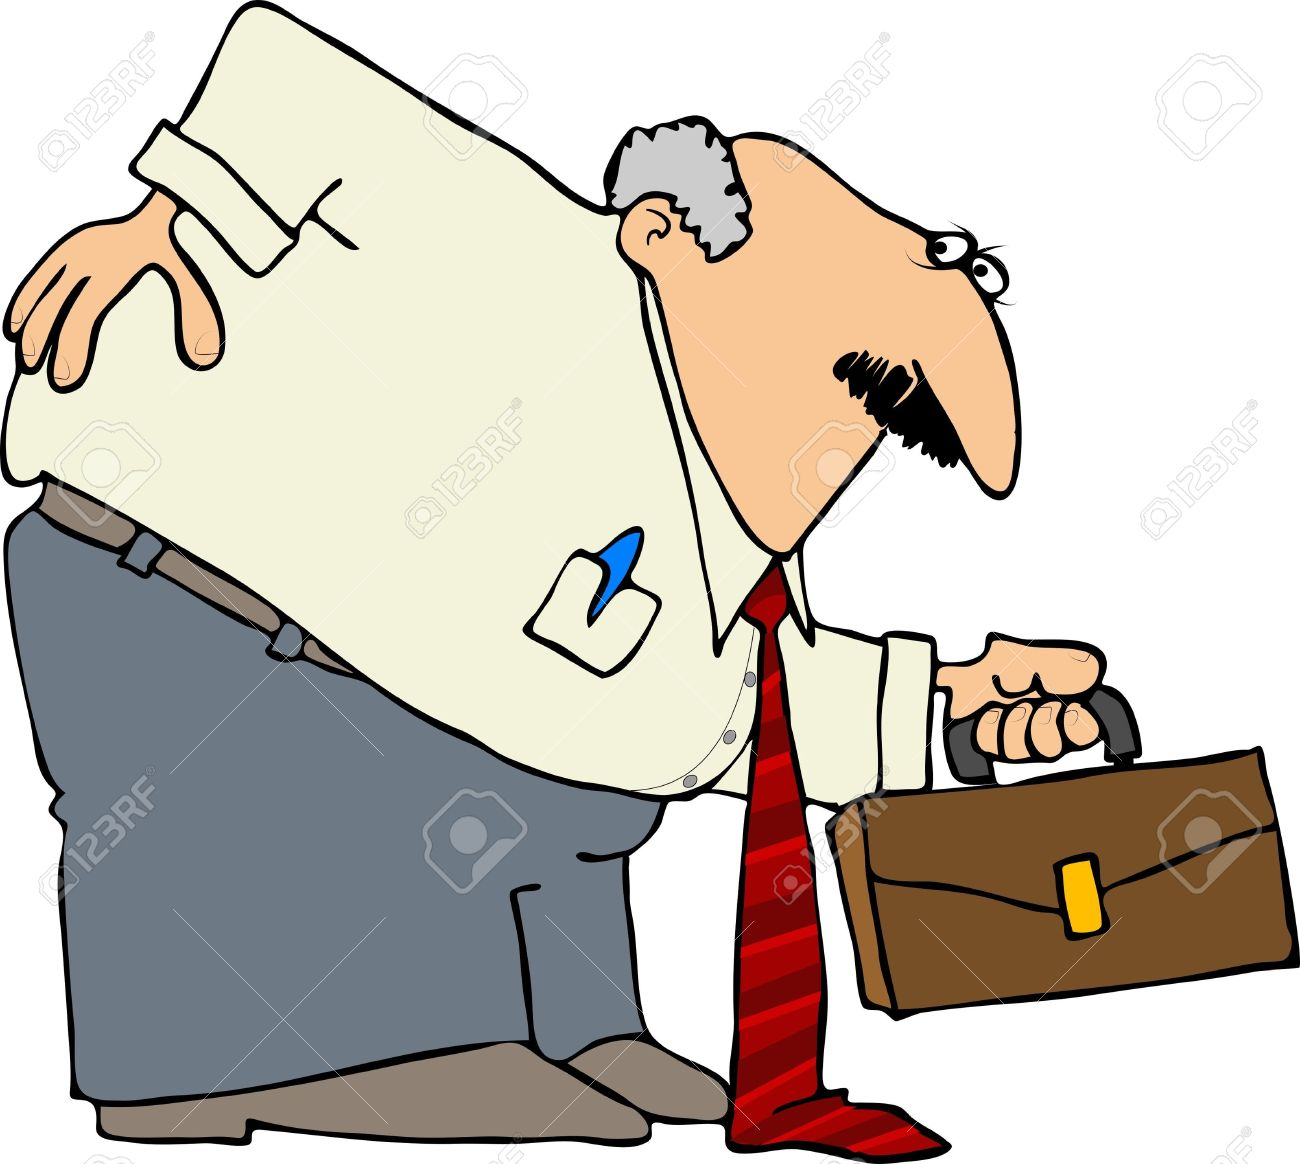 This Illustration Depicts A Businessman Bent Over With A Sore.